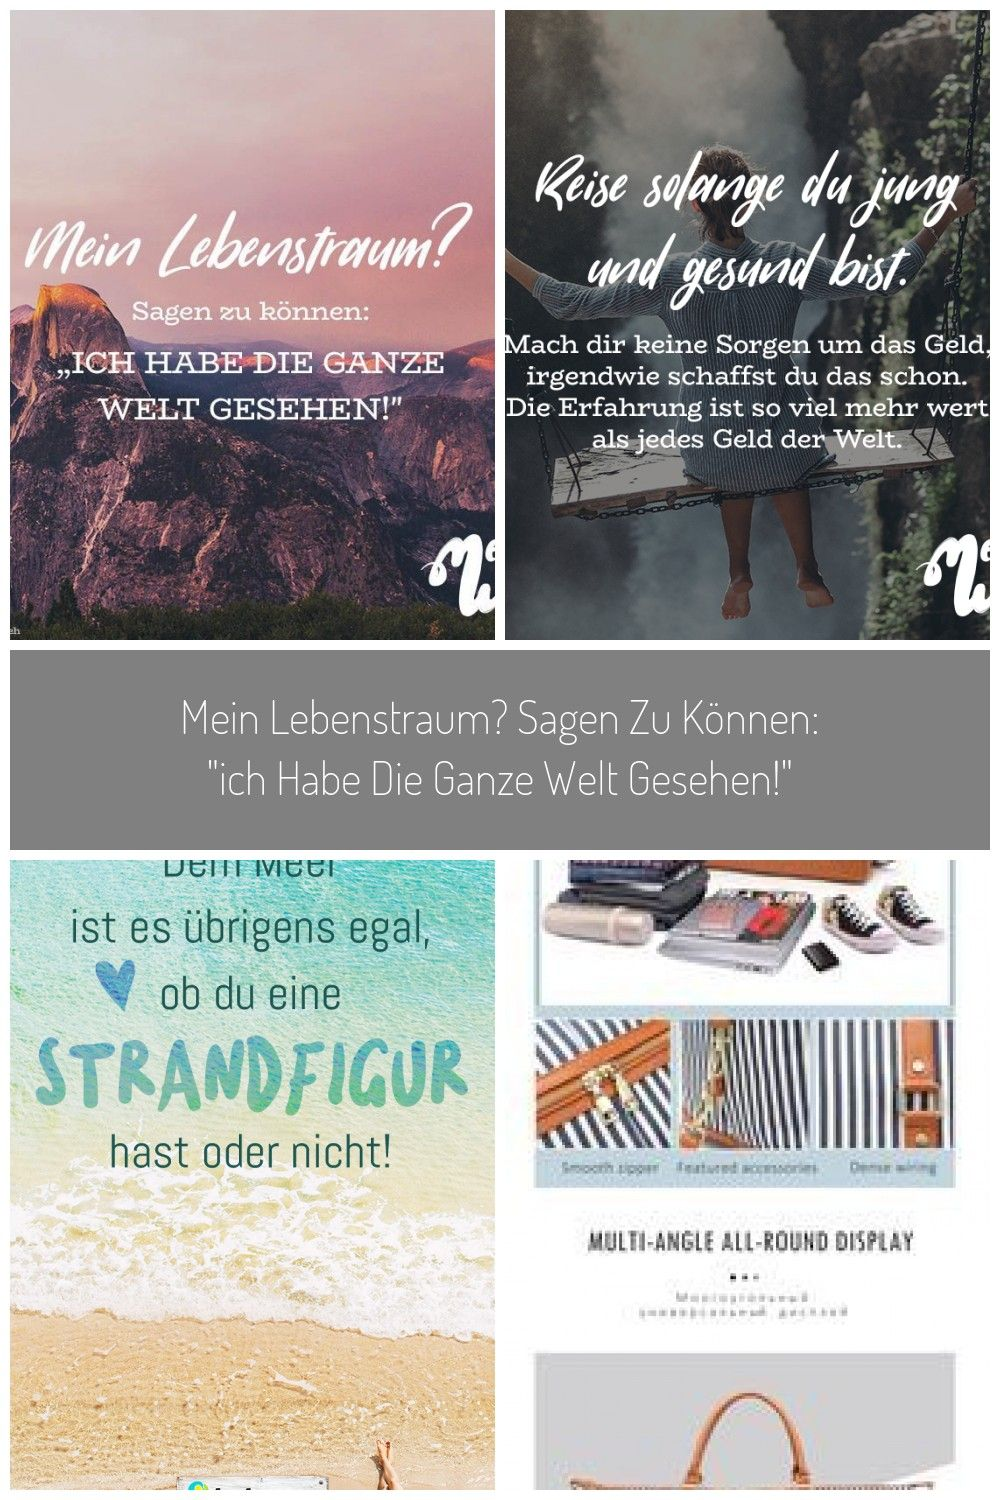 To be able to tell my life dream I 39;ve seen the whole world! Find and share inspiring quotes sayings and wisdom on VISUAL STATEMENTSTravel as long as you are young and healthy Don 39 #reisen sprüche My dream of being able to say quot;I 39;ve seen the whole world! quot;Travel as long as you are young and healthy Don 39;t worry about the money somehow you can do it The experience is worth so much more than any money from WeldThe sea doesn 39;t care if you have a beach fi